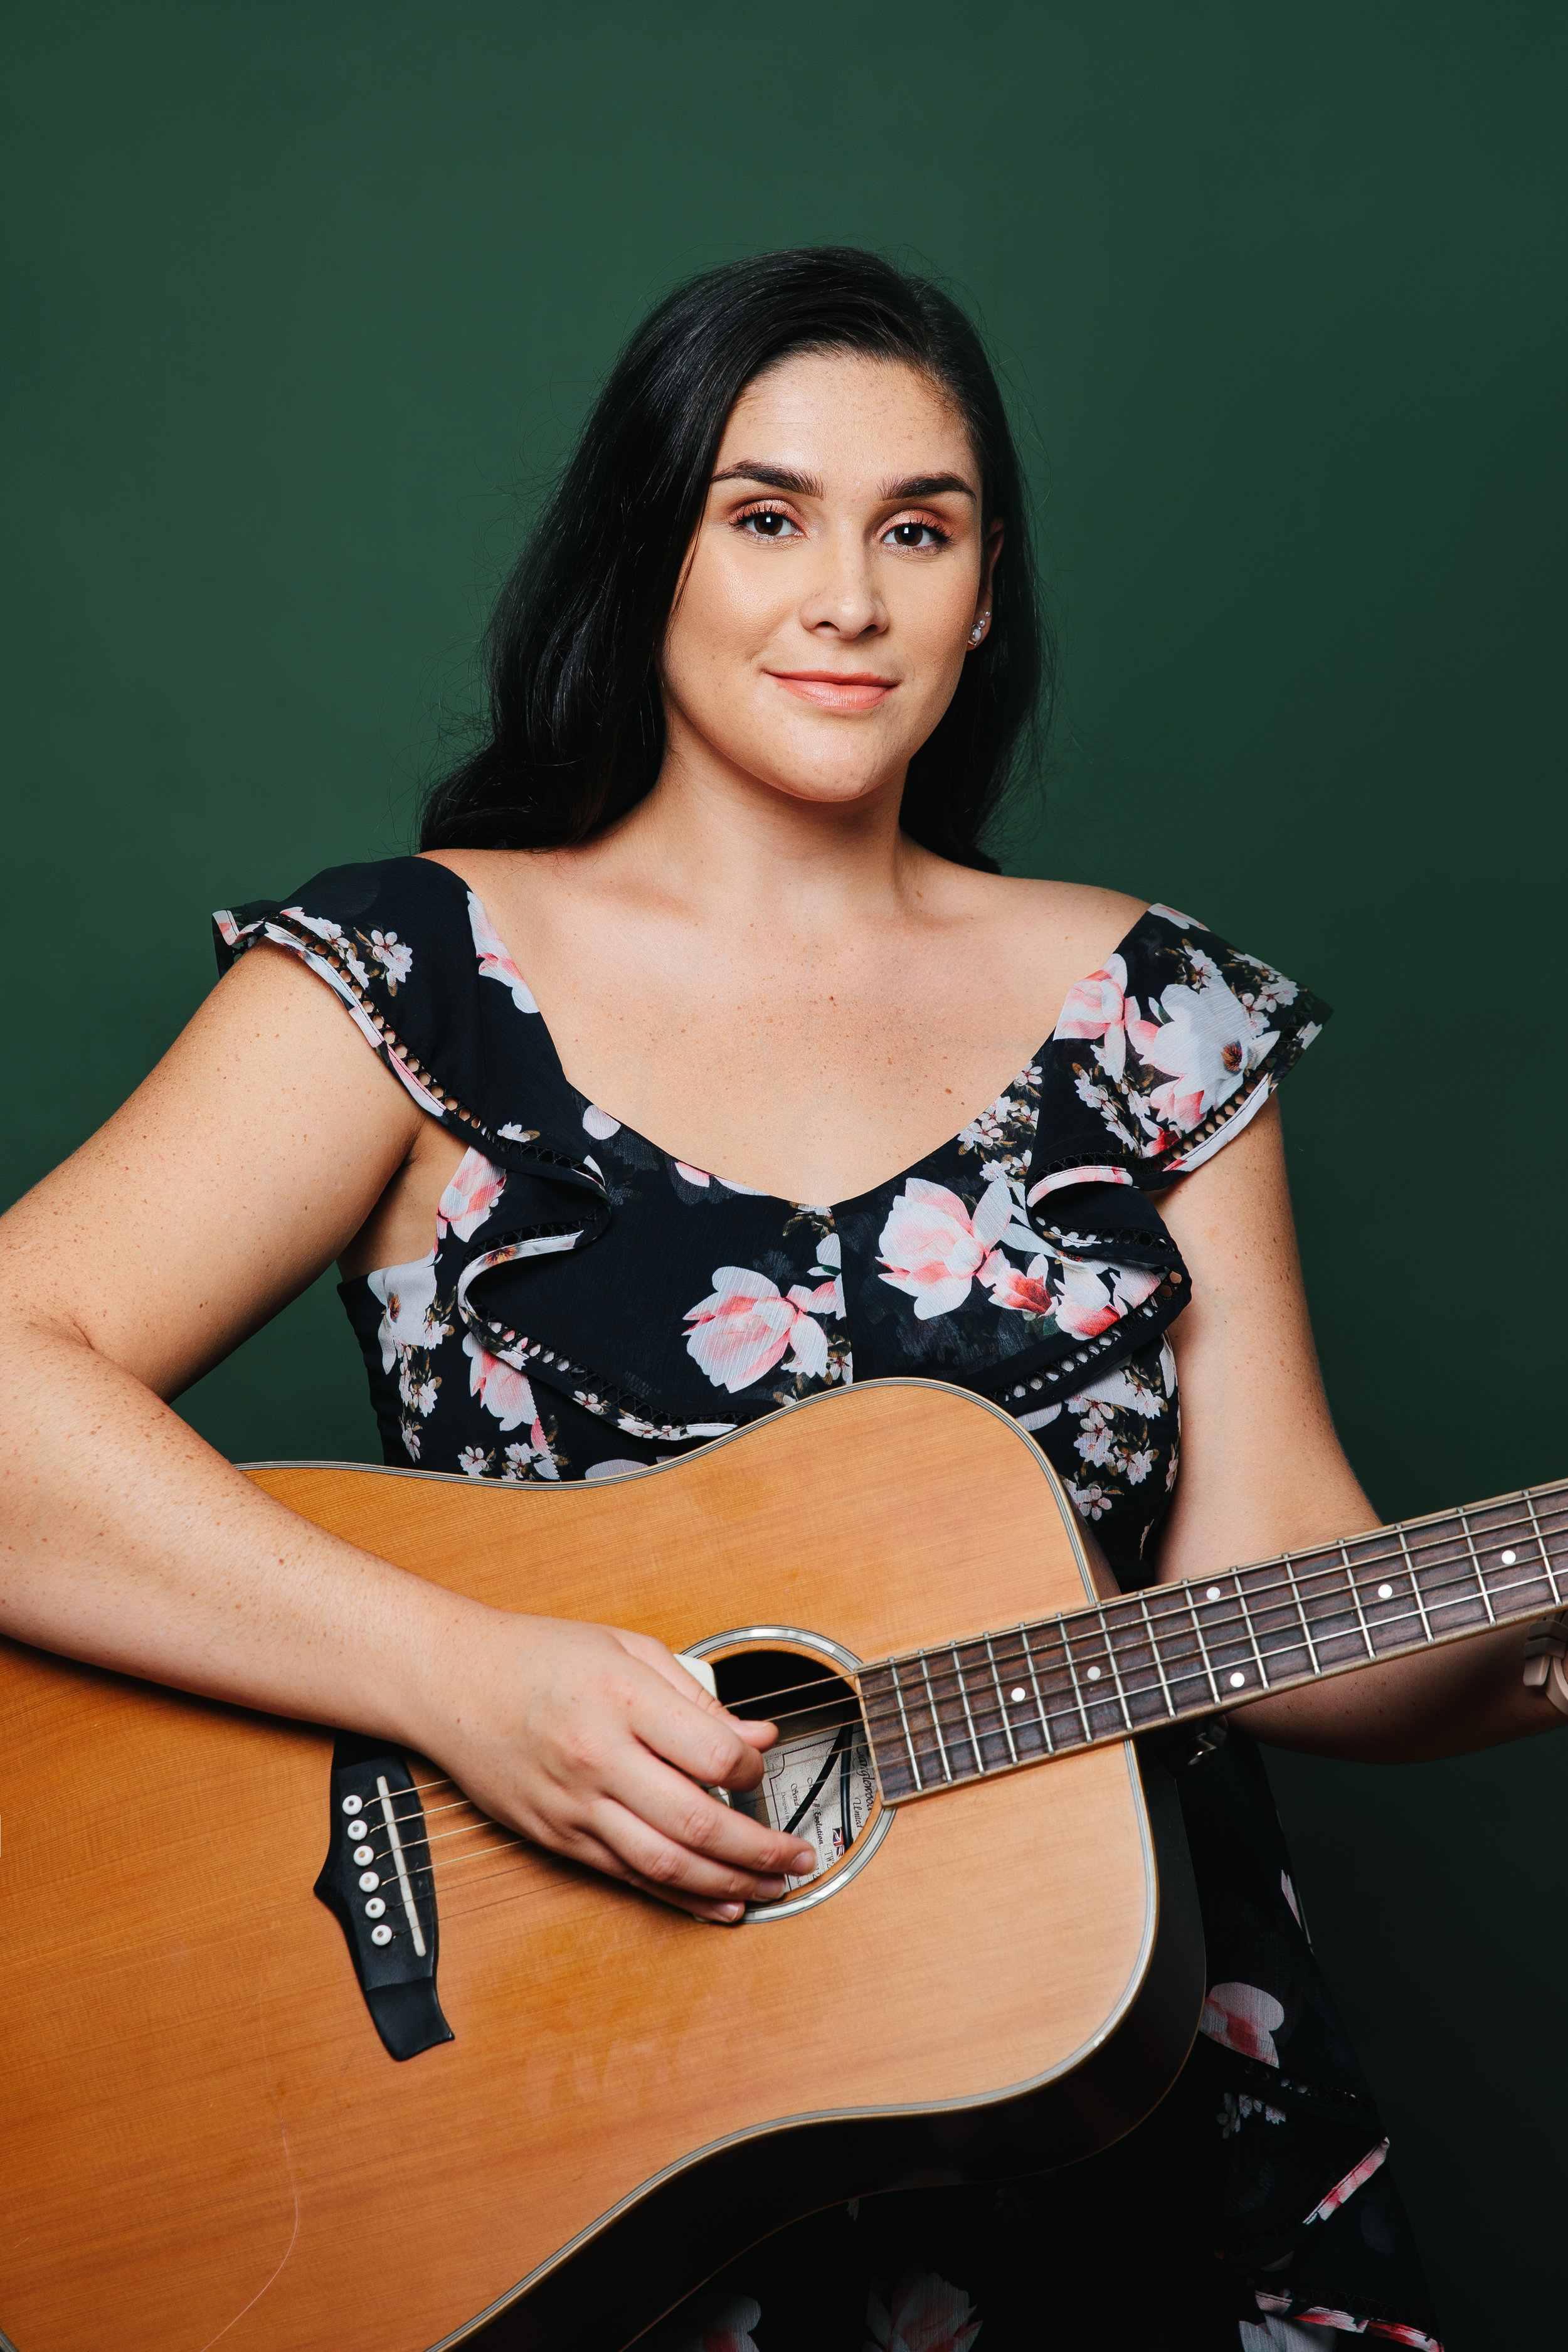 Caitlin - Singer + Guitarist or KeysCaitlin is the Alianah Entertainment Queen of RnB. Echoing artists like Beyonce and Ariana Grande, Caitlin can play something to quieten the mood or get the whole party on their feet.A star musician with a whole lotta soul.